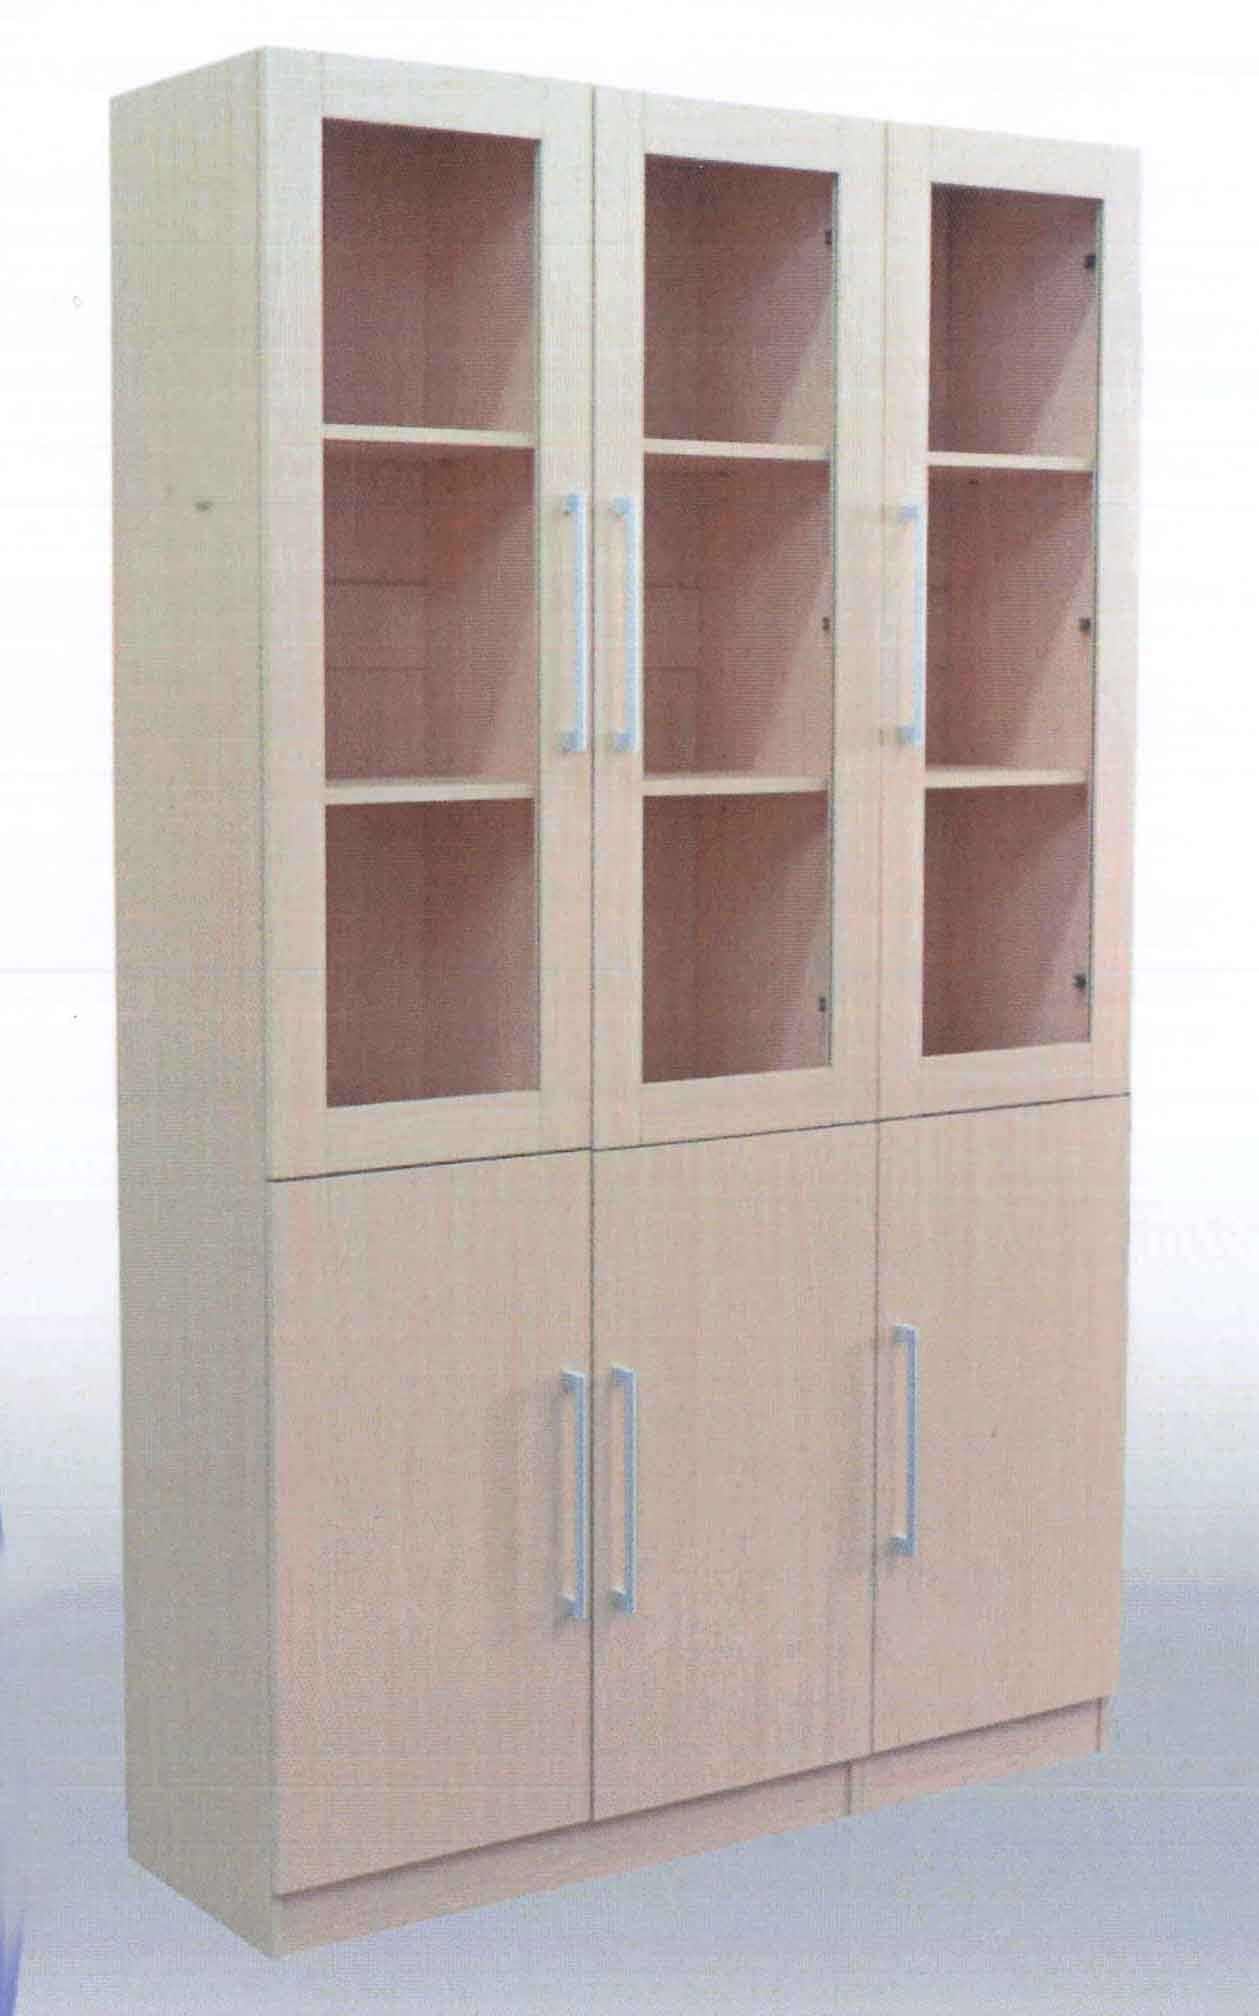 Fynballa Storage Unit C Furniture Home D Cor Fortytwo